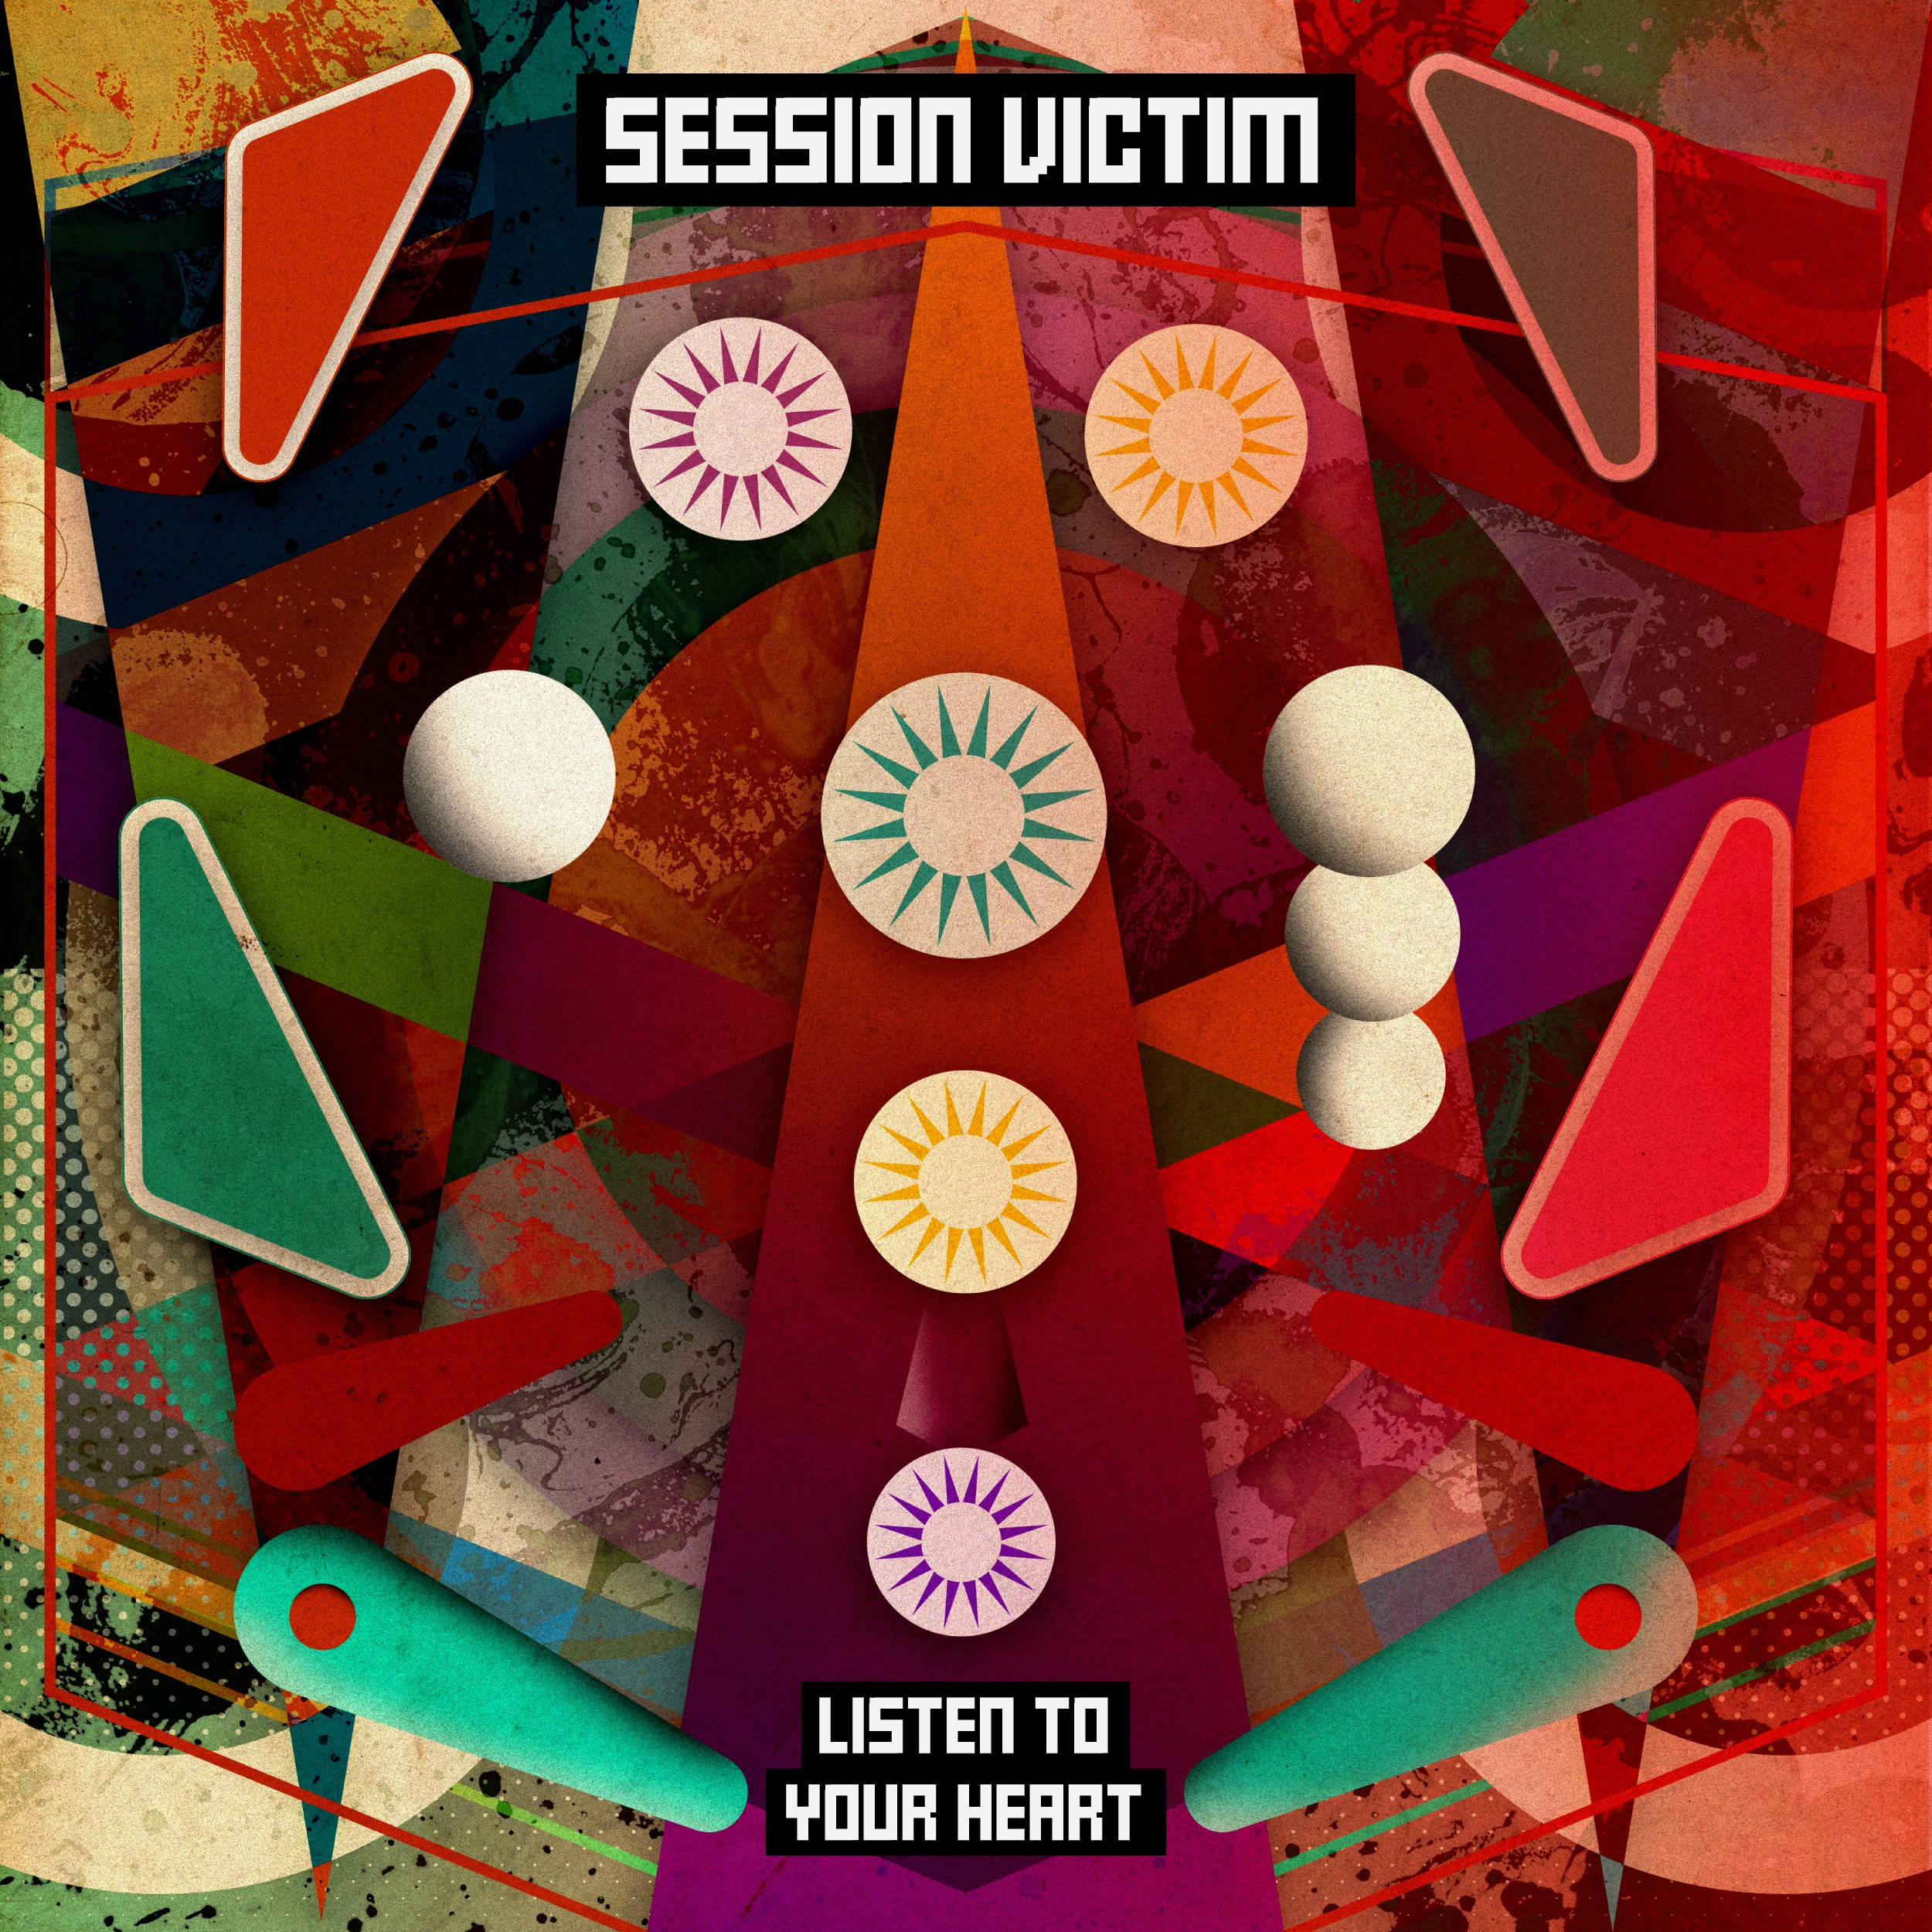 Session Victim/LISTEN TO YOUR HEART CD